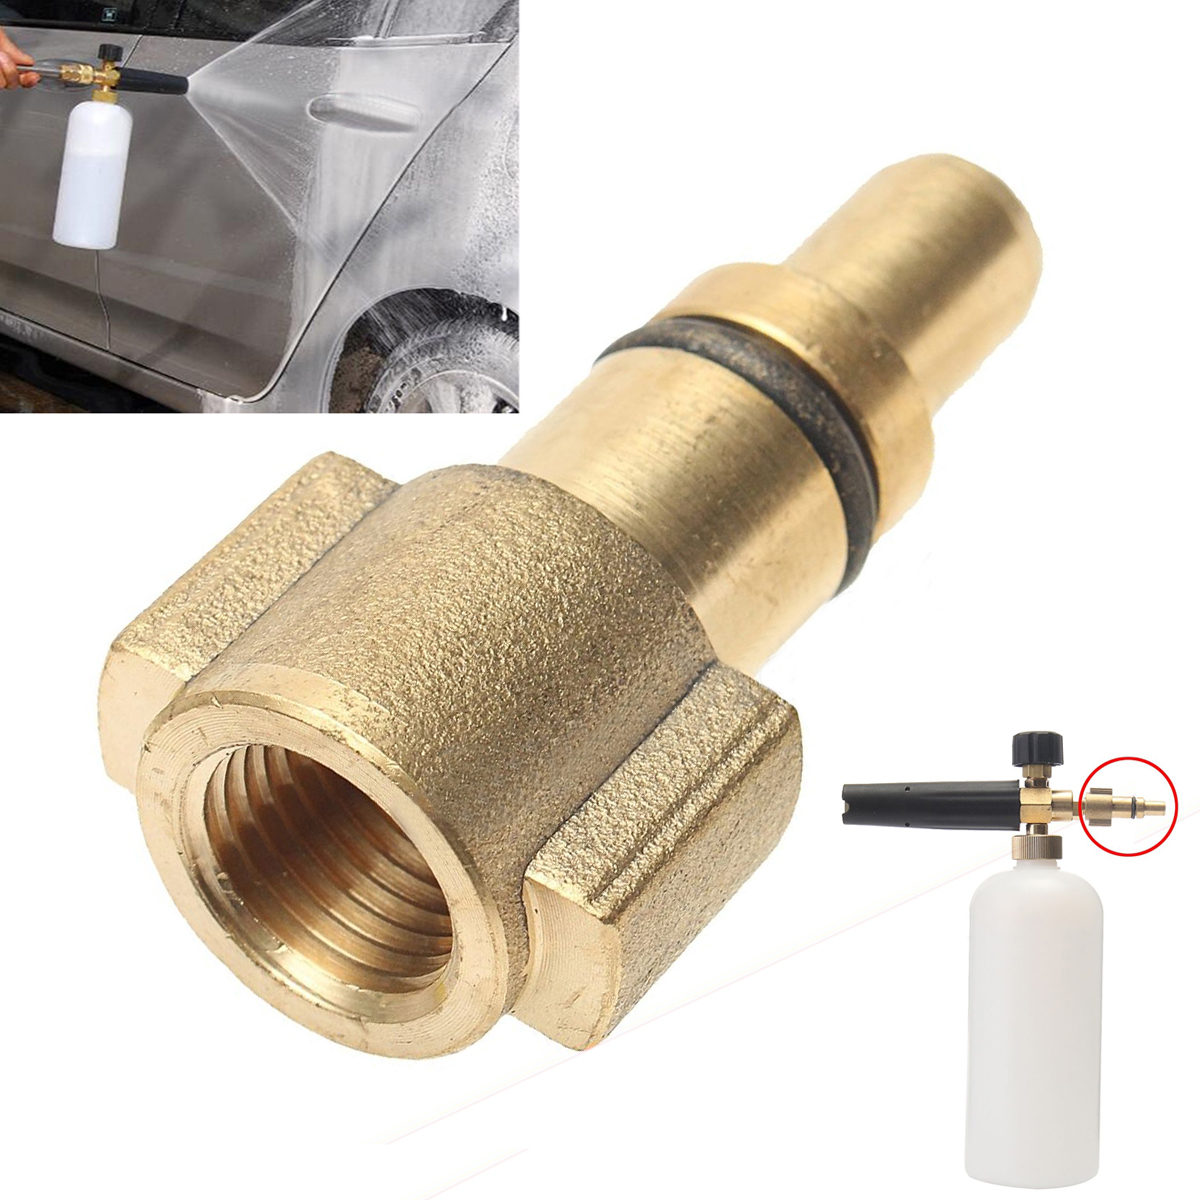 1/4 Female Car Pressure Washer Adapter Connector 3000PSI Mayitr Quick Connection Adaptor Fitting For Snow Foam Lance